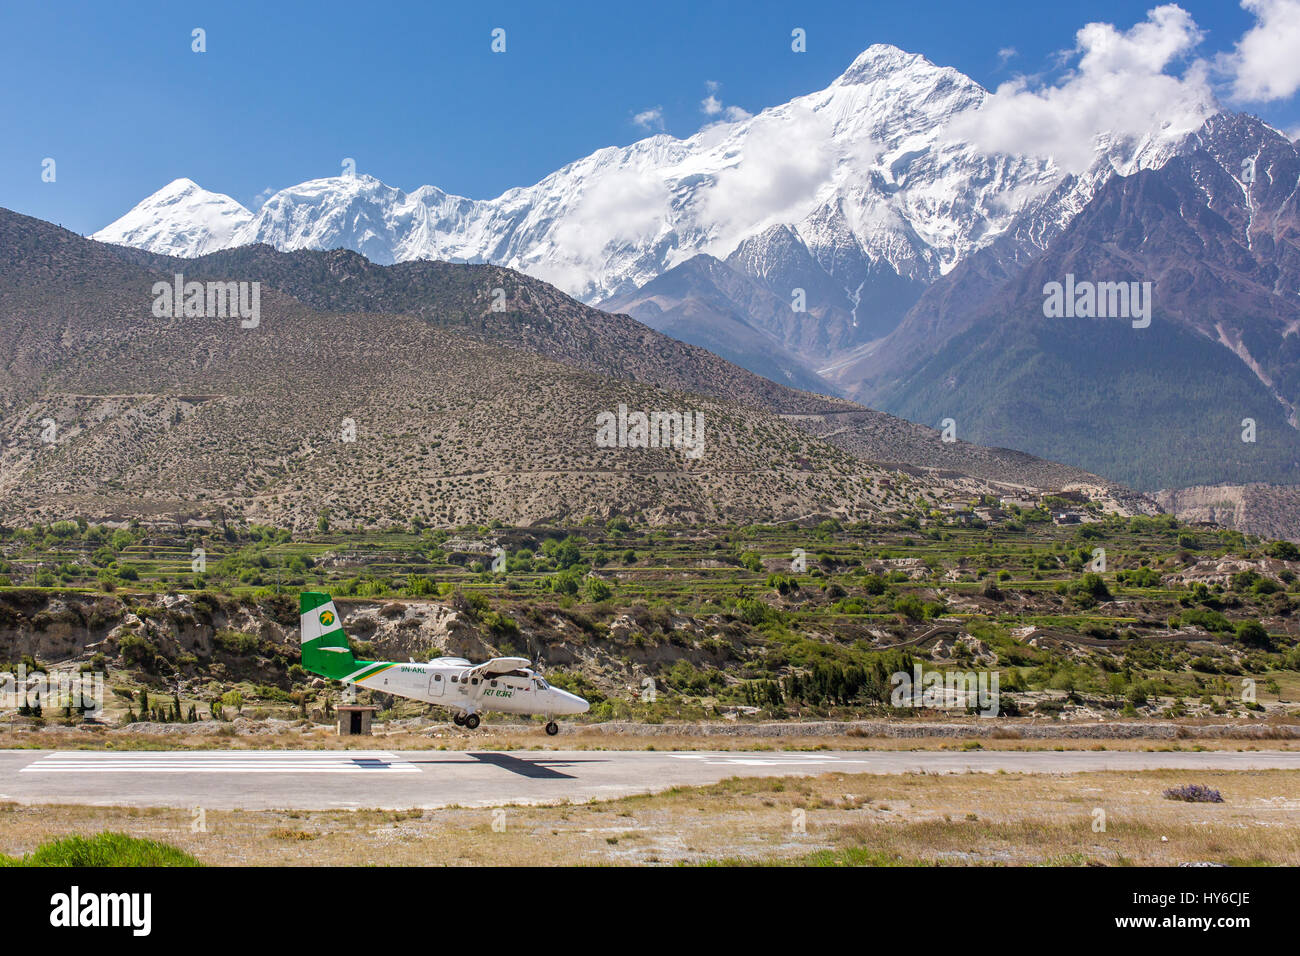 Jomsom, Nepal - May 14, 2016: Jomsom airport in Nepal - one of the most dangerous airports in the world. - Stock Image